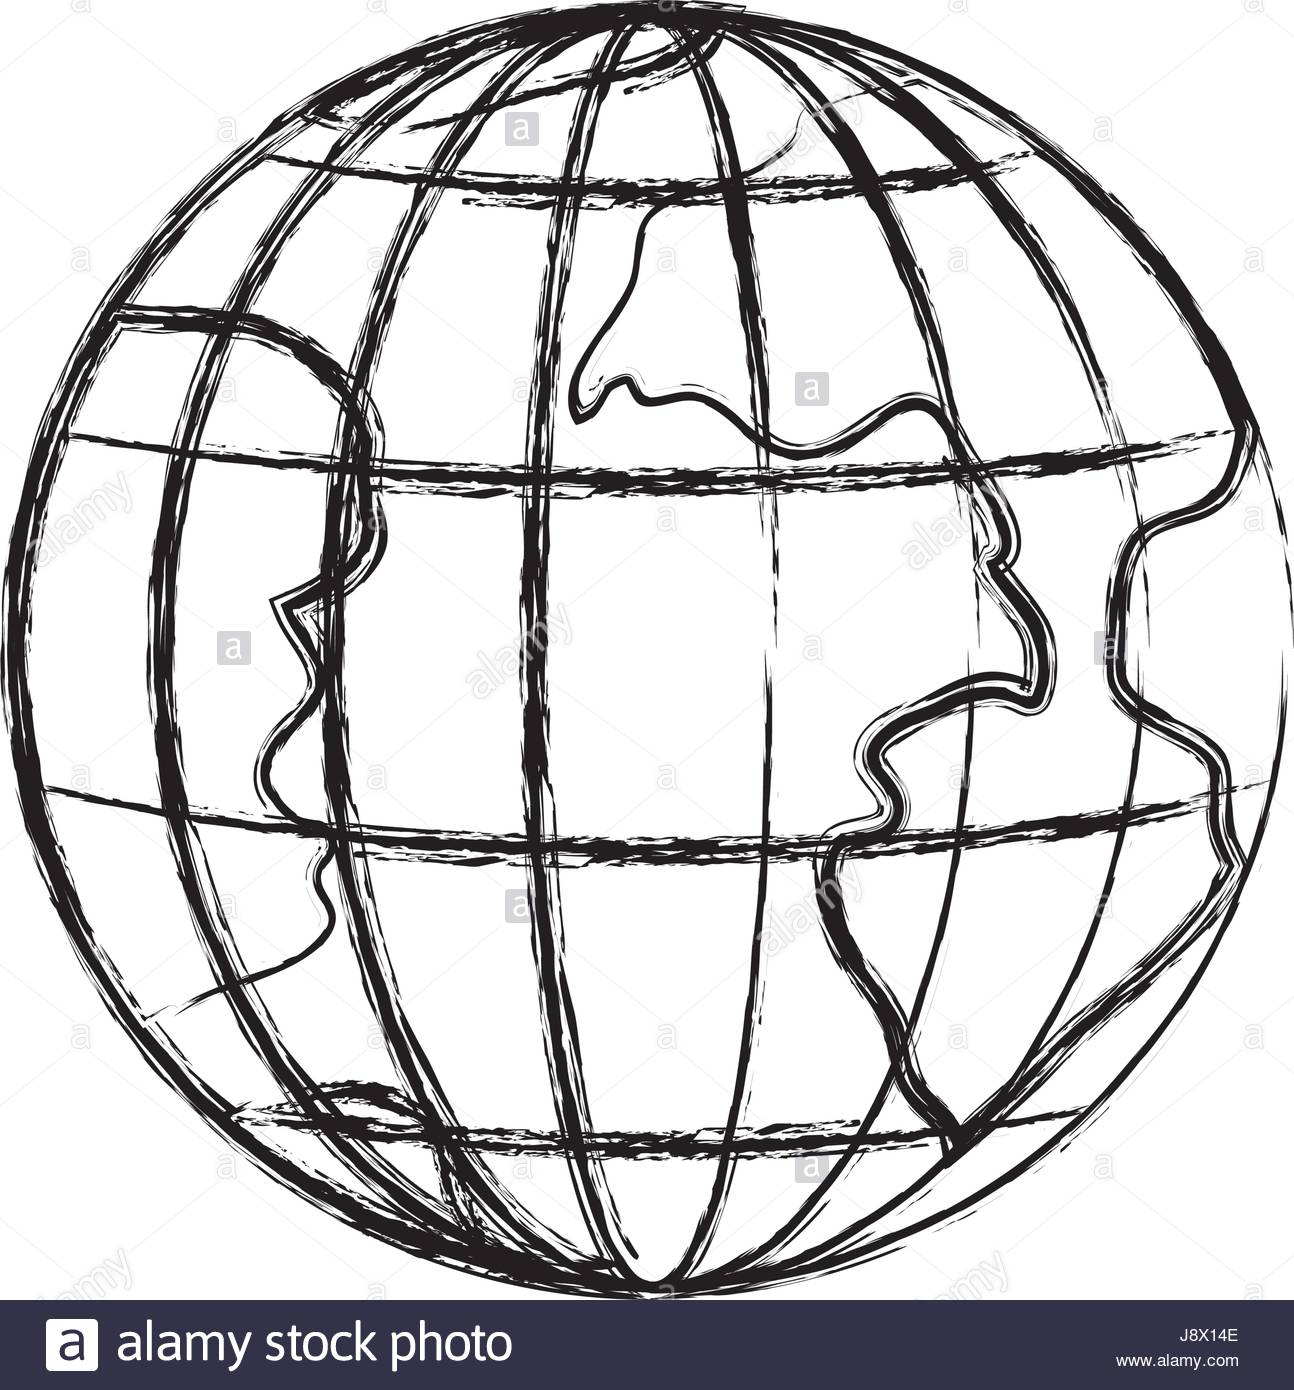 1294x1390 Monochrome Blurred Silhouette Of Earth Globe With Meridians